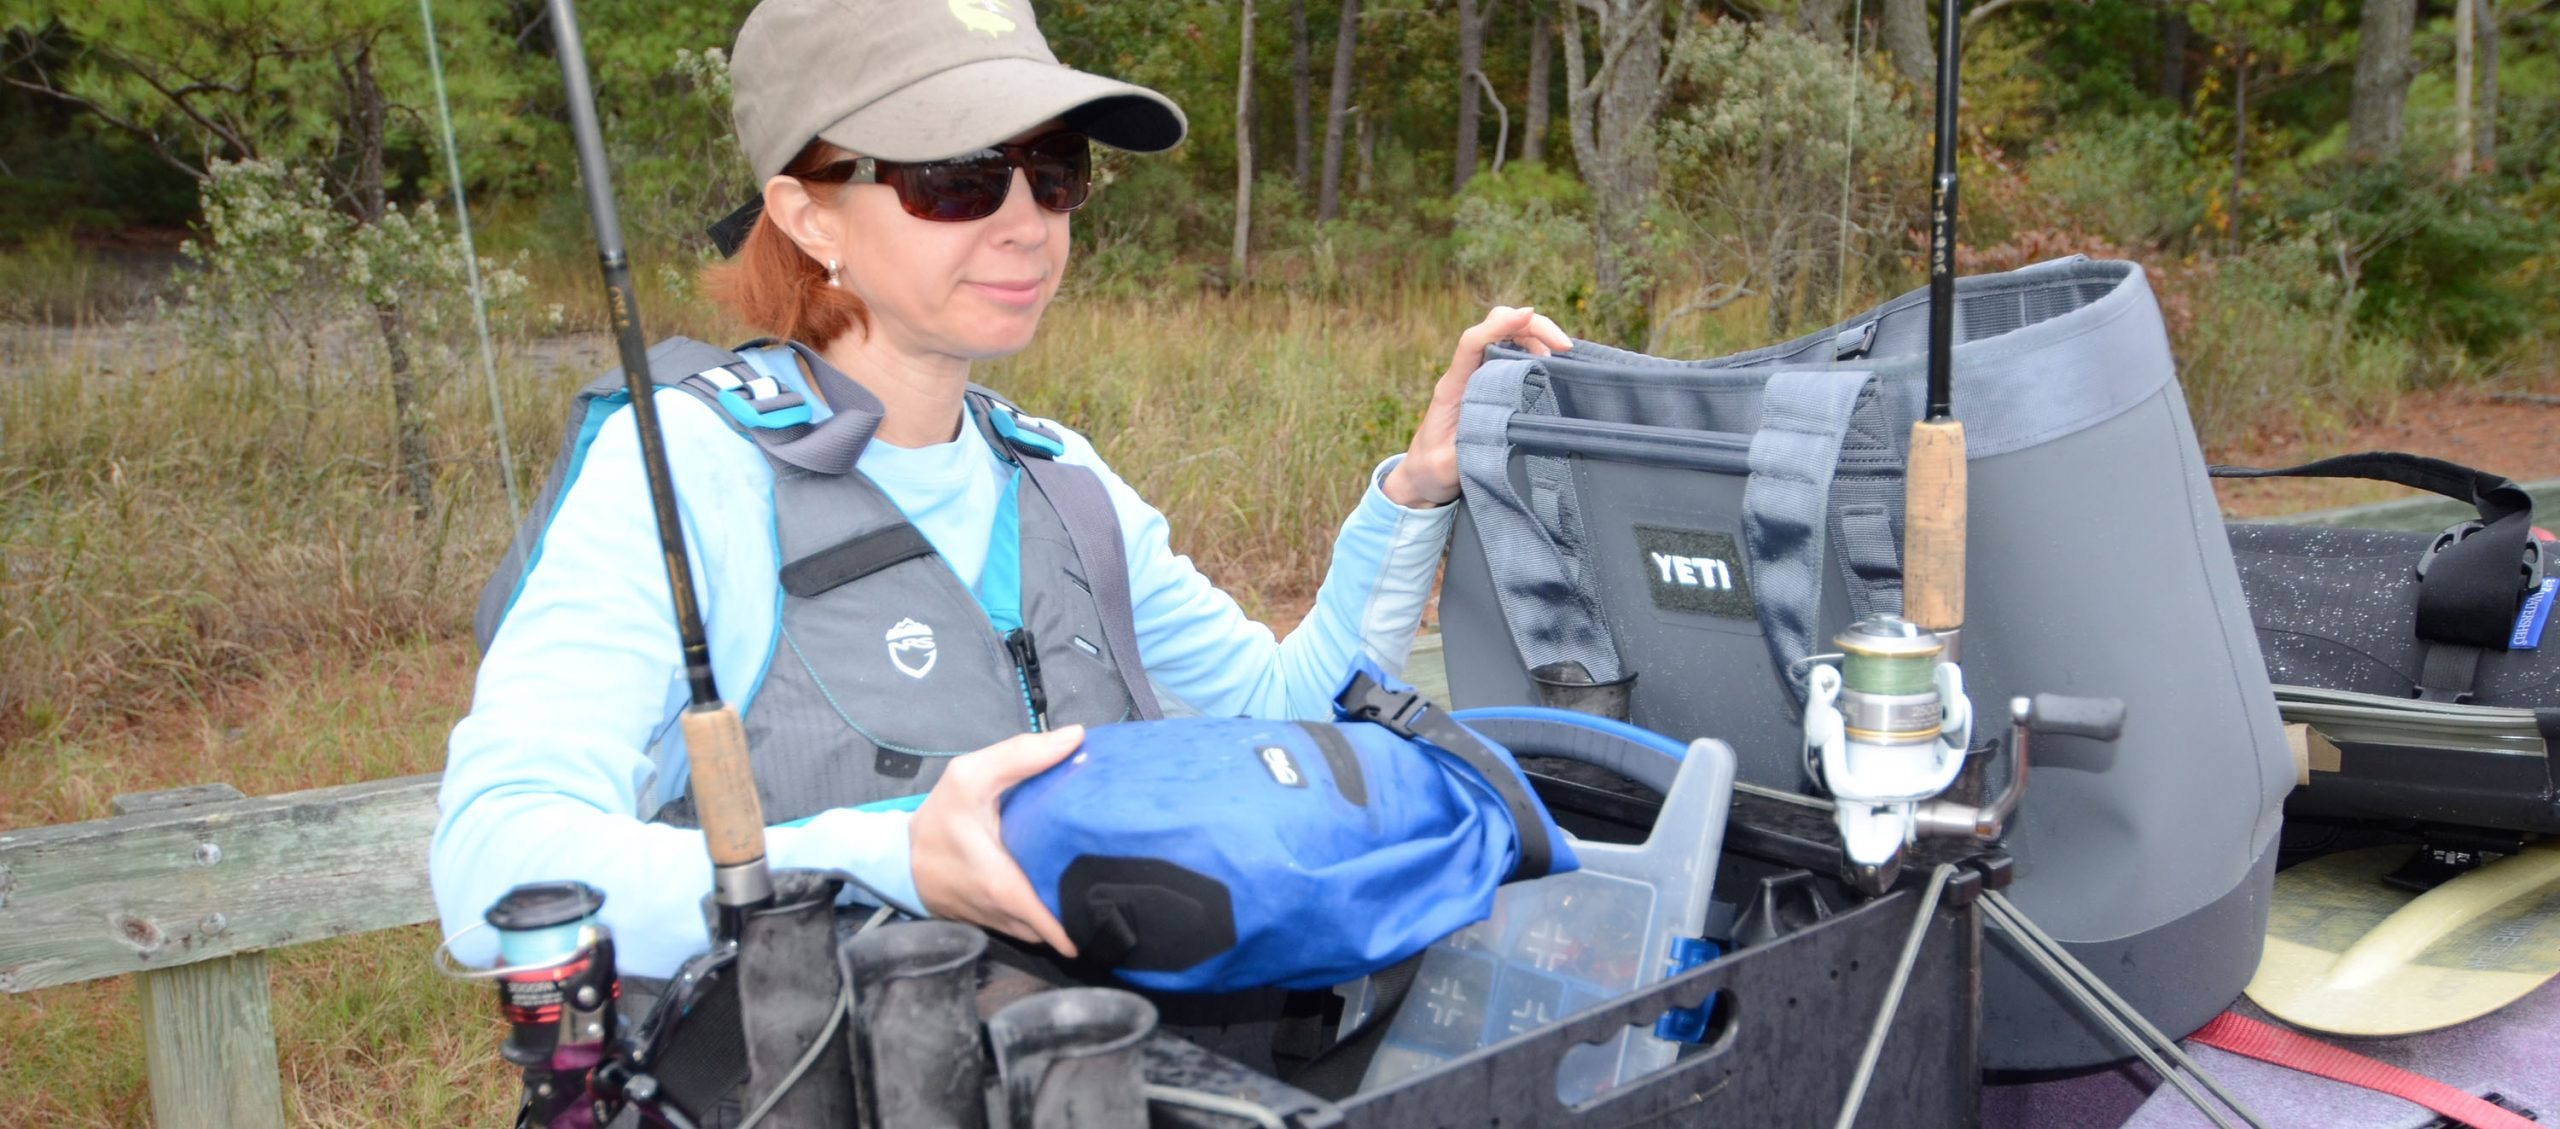 Woman standing beside fishing kayak with cooler, drybag, and other gear.